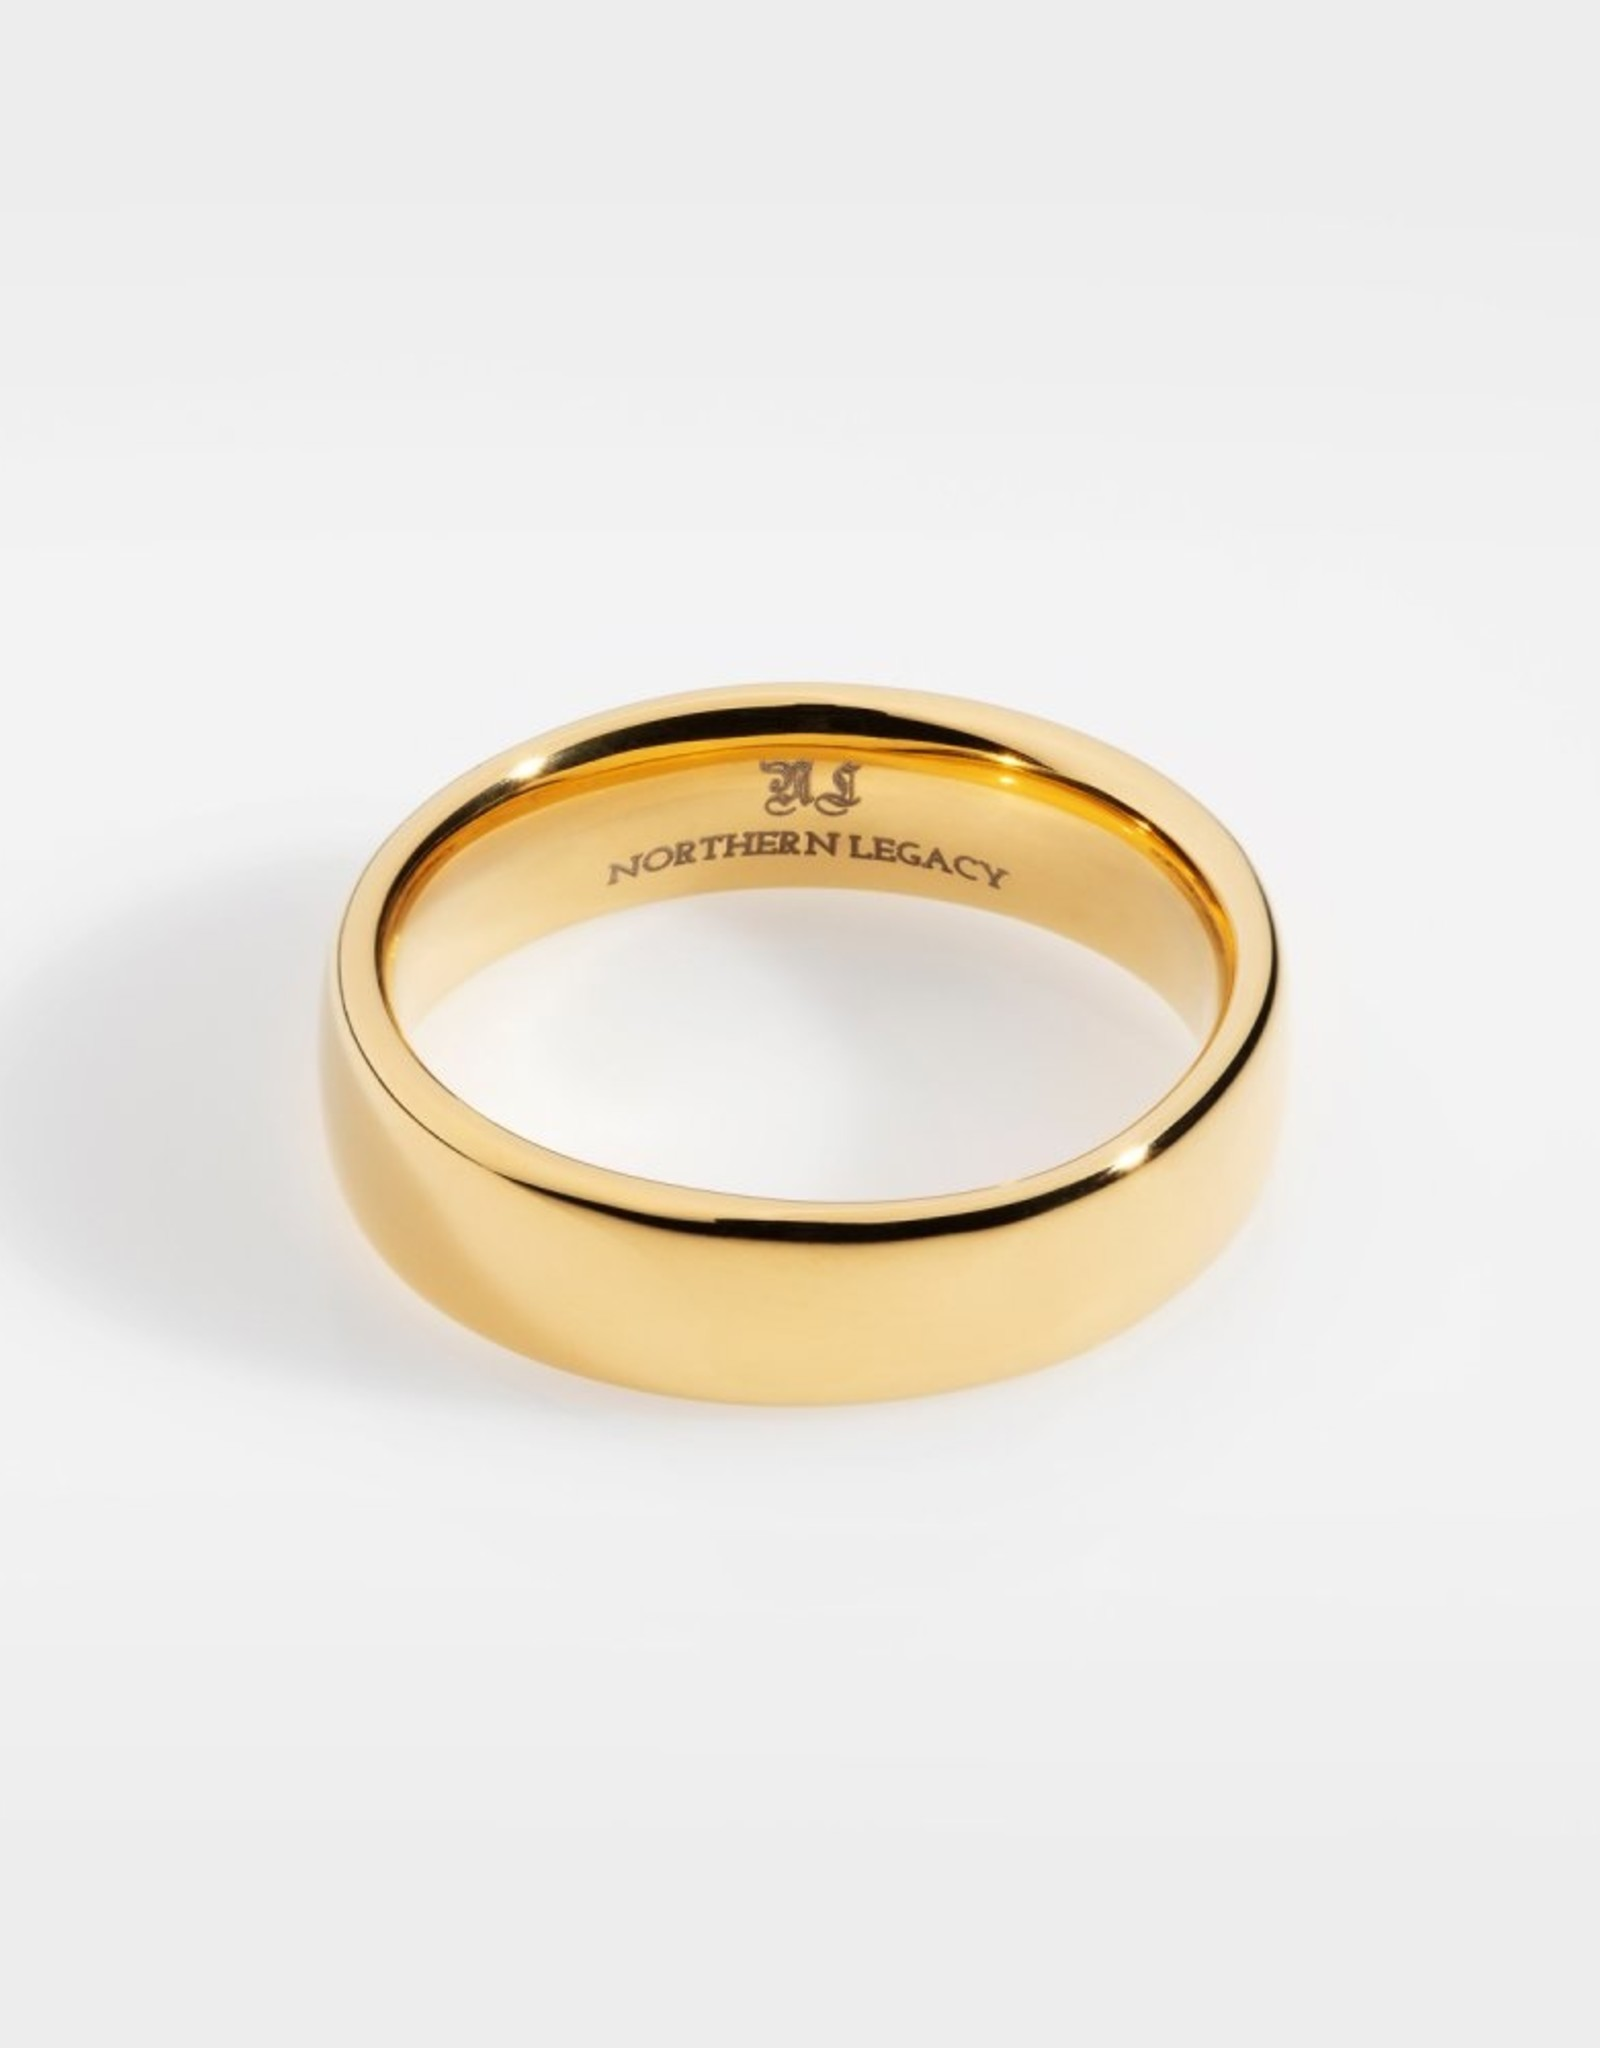 Northern Legacy Siempre Band-Gold Tone Ring 11